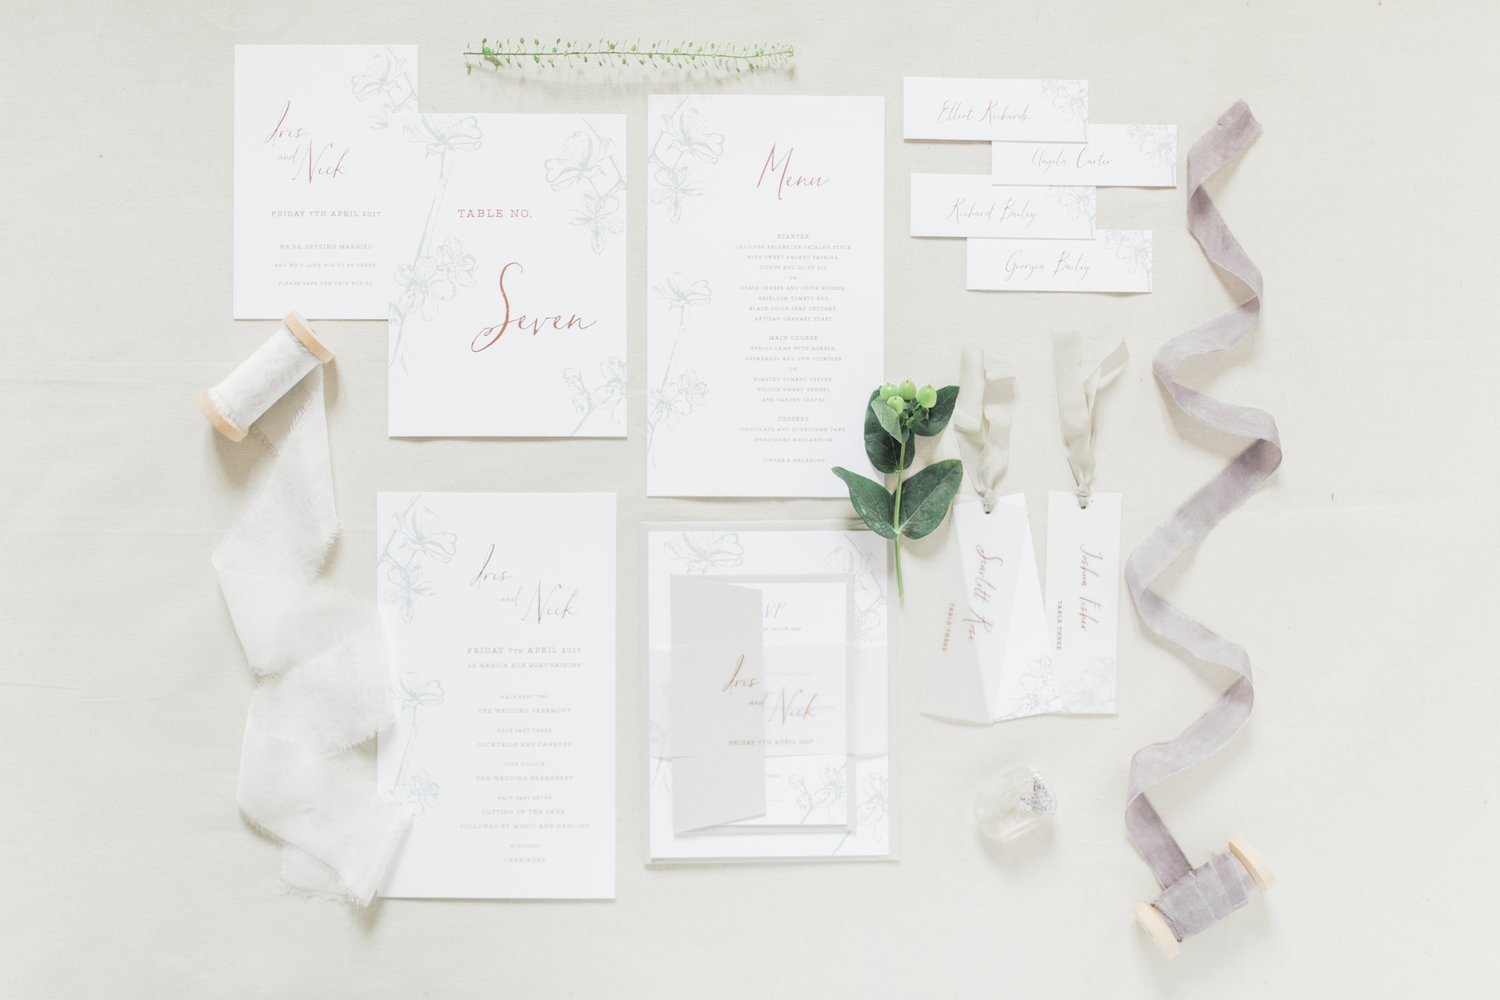 select your suite - Planning your wedding should be an experience to treasure. Allow yourself time to dream a little whilst exploring the collection. Begin by choosing your favourite design and which elements to include in your invitation suite.